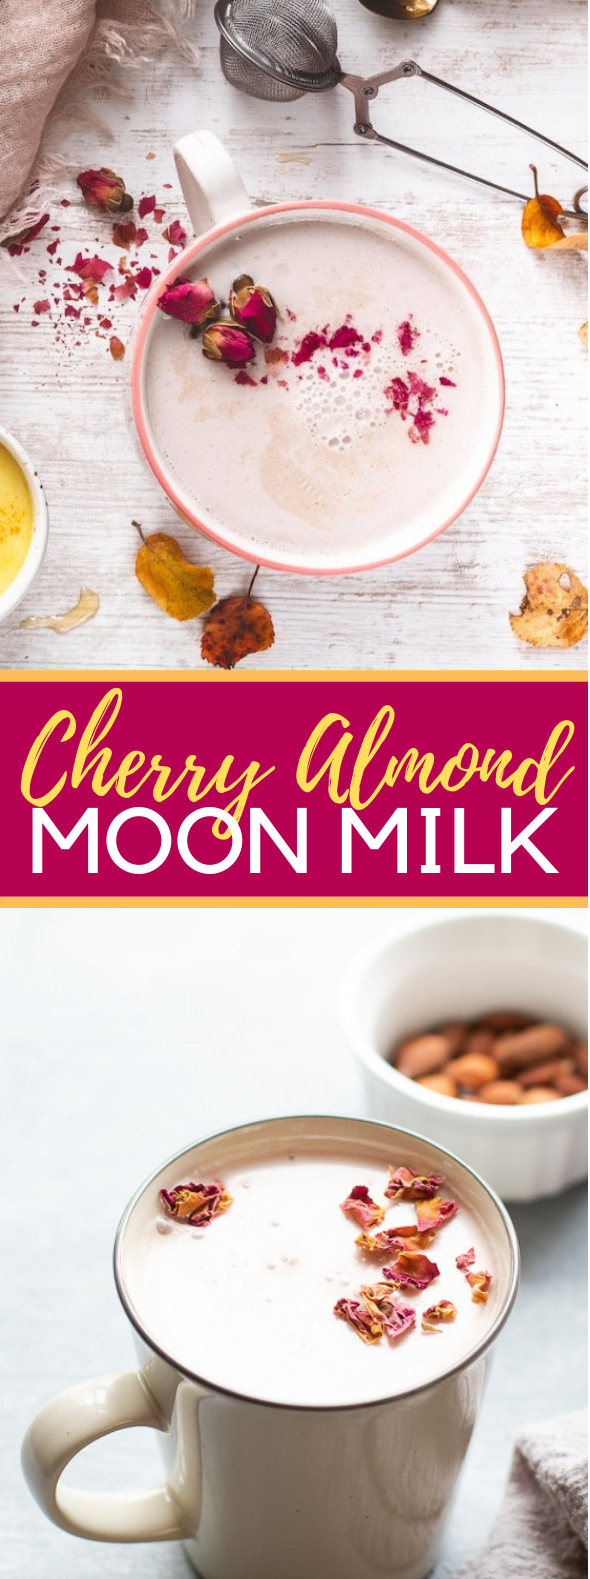 Cherry Almond Moon Milk #drinks #glutenfree